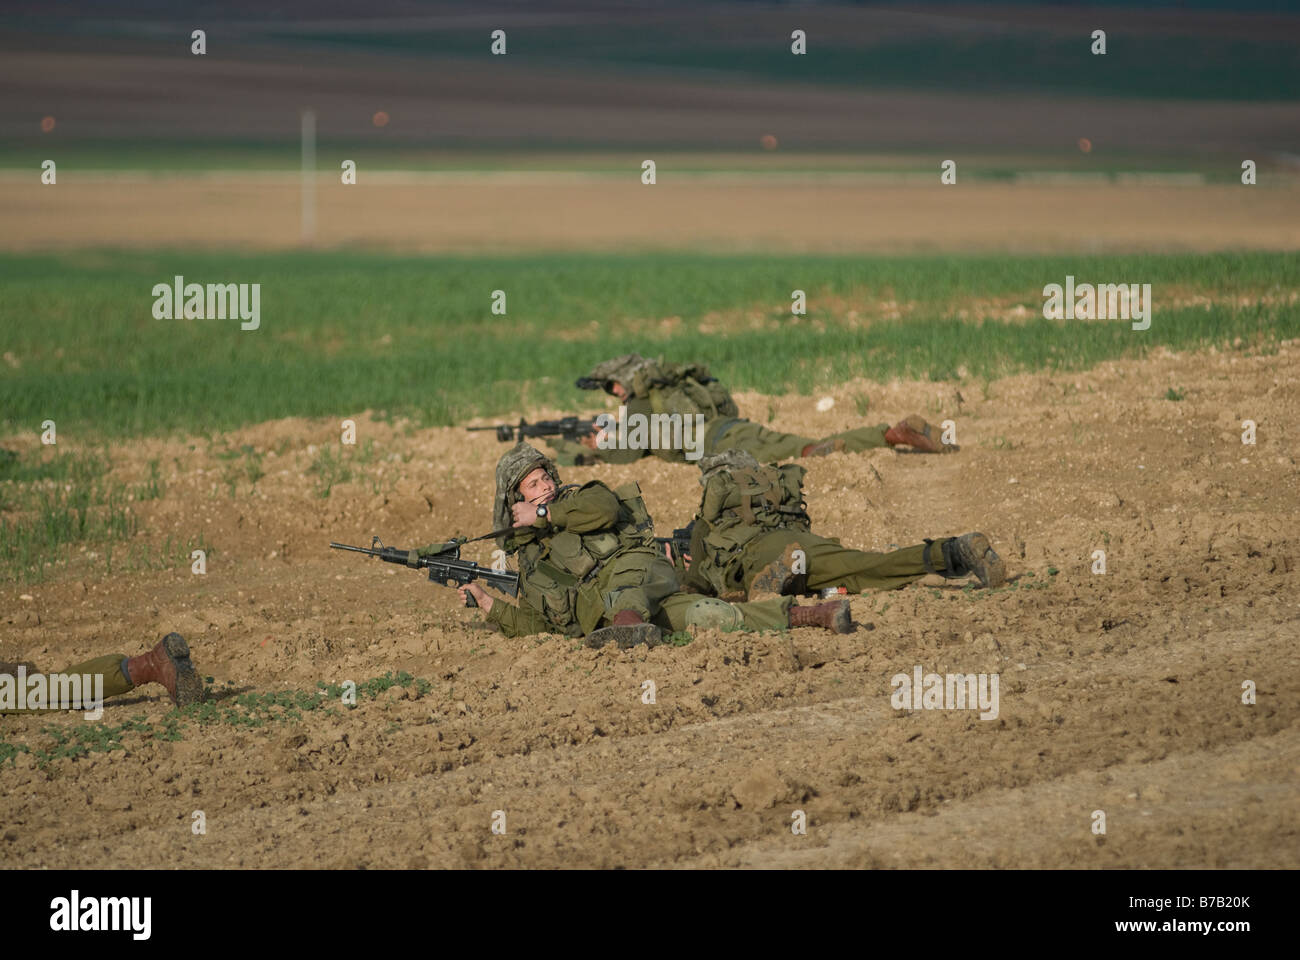 Elite Israeli soldiers taking battle position near the Gaza border, Israel. - Stock Image